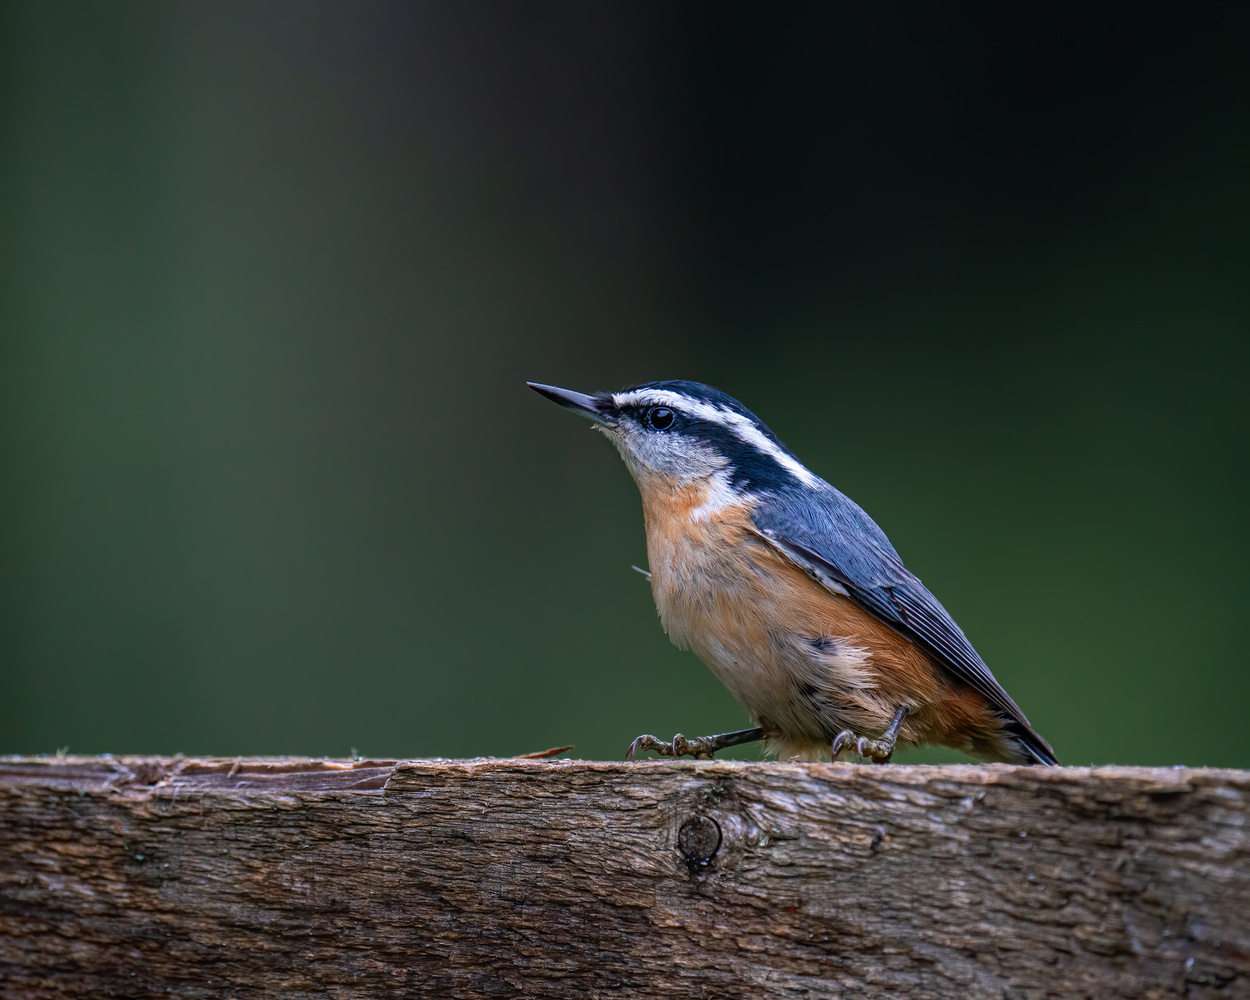 Nuthatches by Skyler Ewing